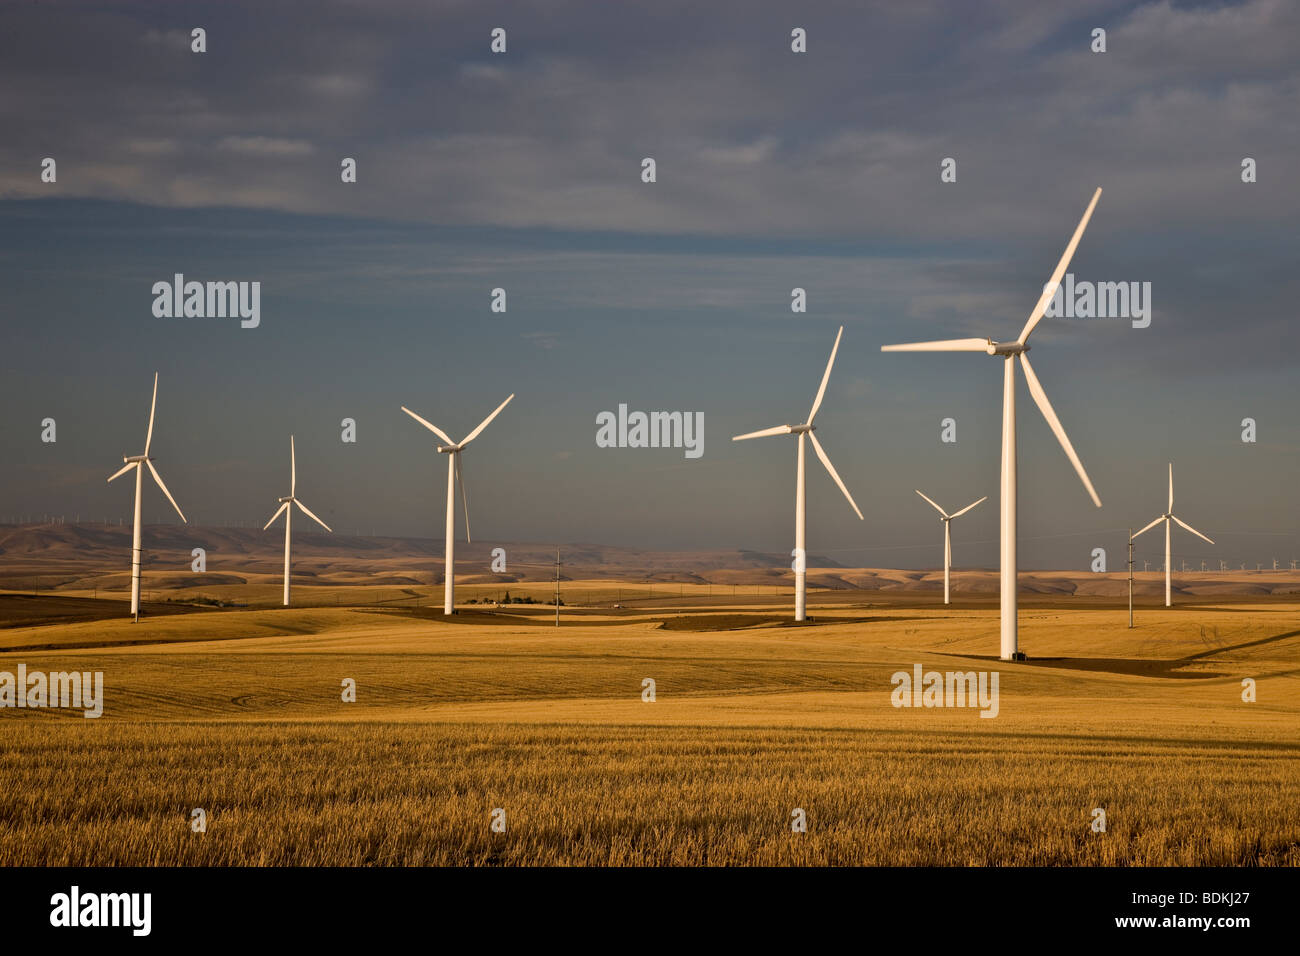 Wind turbines 'wind farm' operating in harvested wheat field. - Stock Image